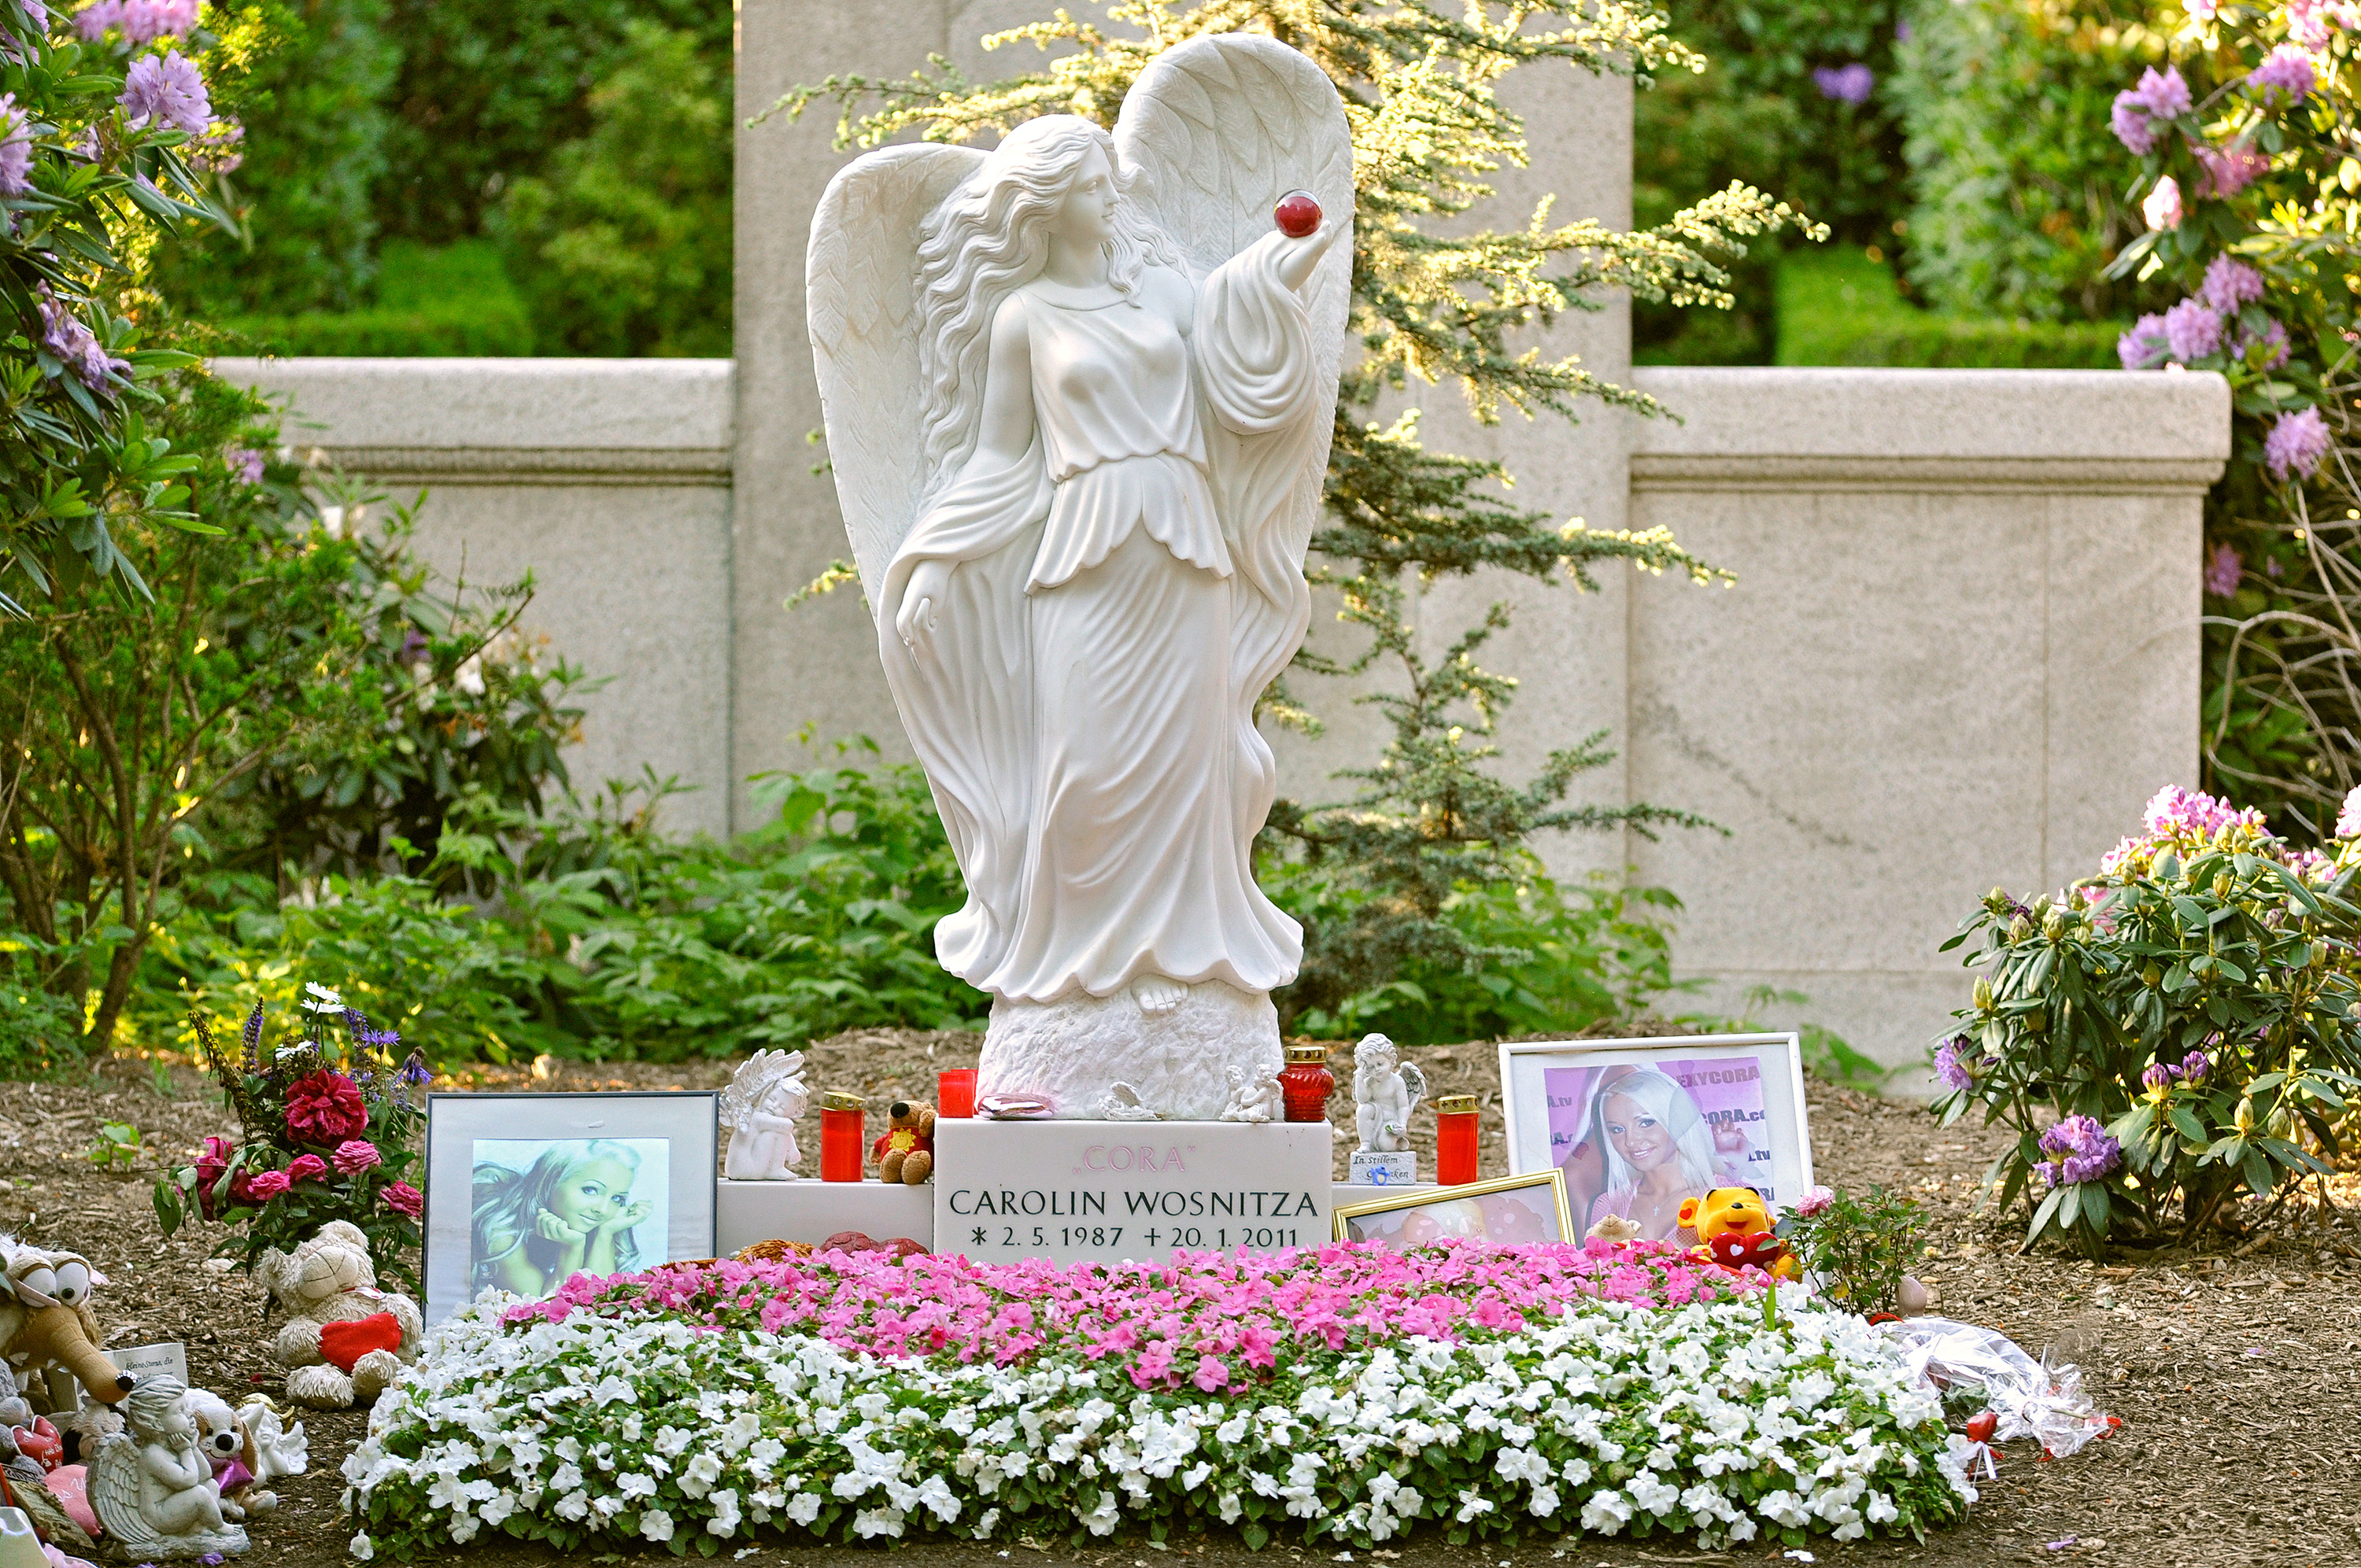 """Cora was buried in a pink coffin at Hamburg's Ohlsdorf Cemetery on 2 February 2011. In May 2011, however, cemetery officials demanded that her husband remove a four-feet tall marble angel and memorial photos that marked the grave, claiming the $15,000 installation was """"too sexy"""".[13] They argued that the grave's markings were inappropriate and could be deemed """"offensive by other mourners visiting the cemetery,"""" one of the largest in the world."""